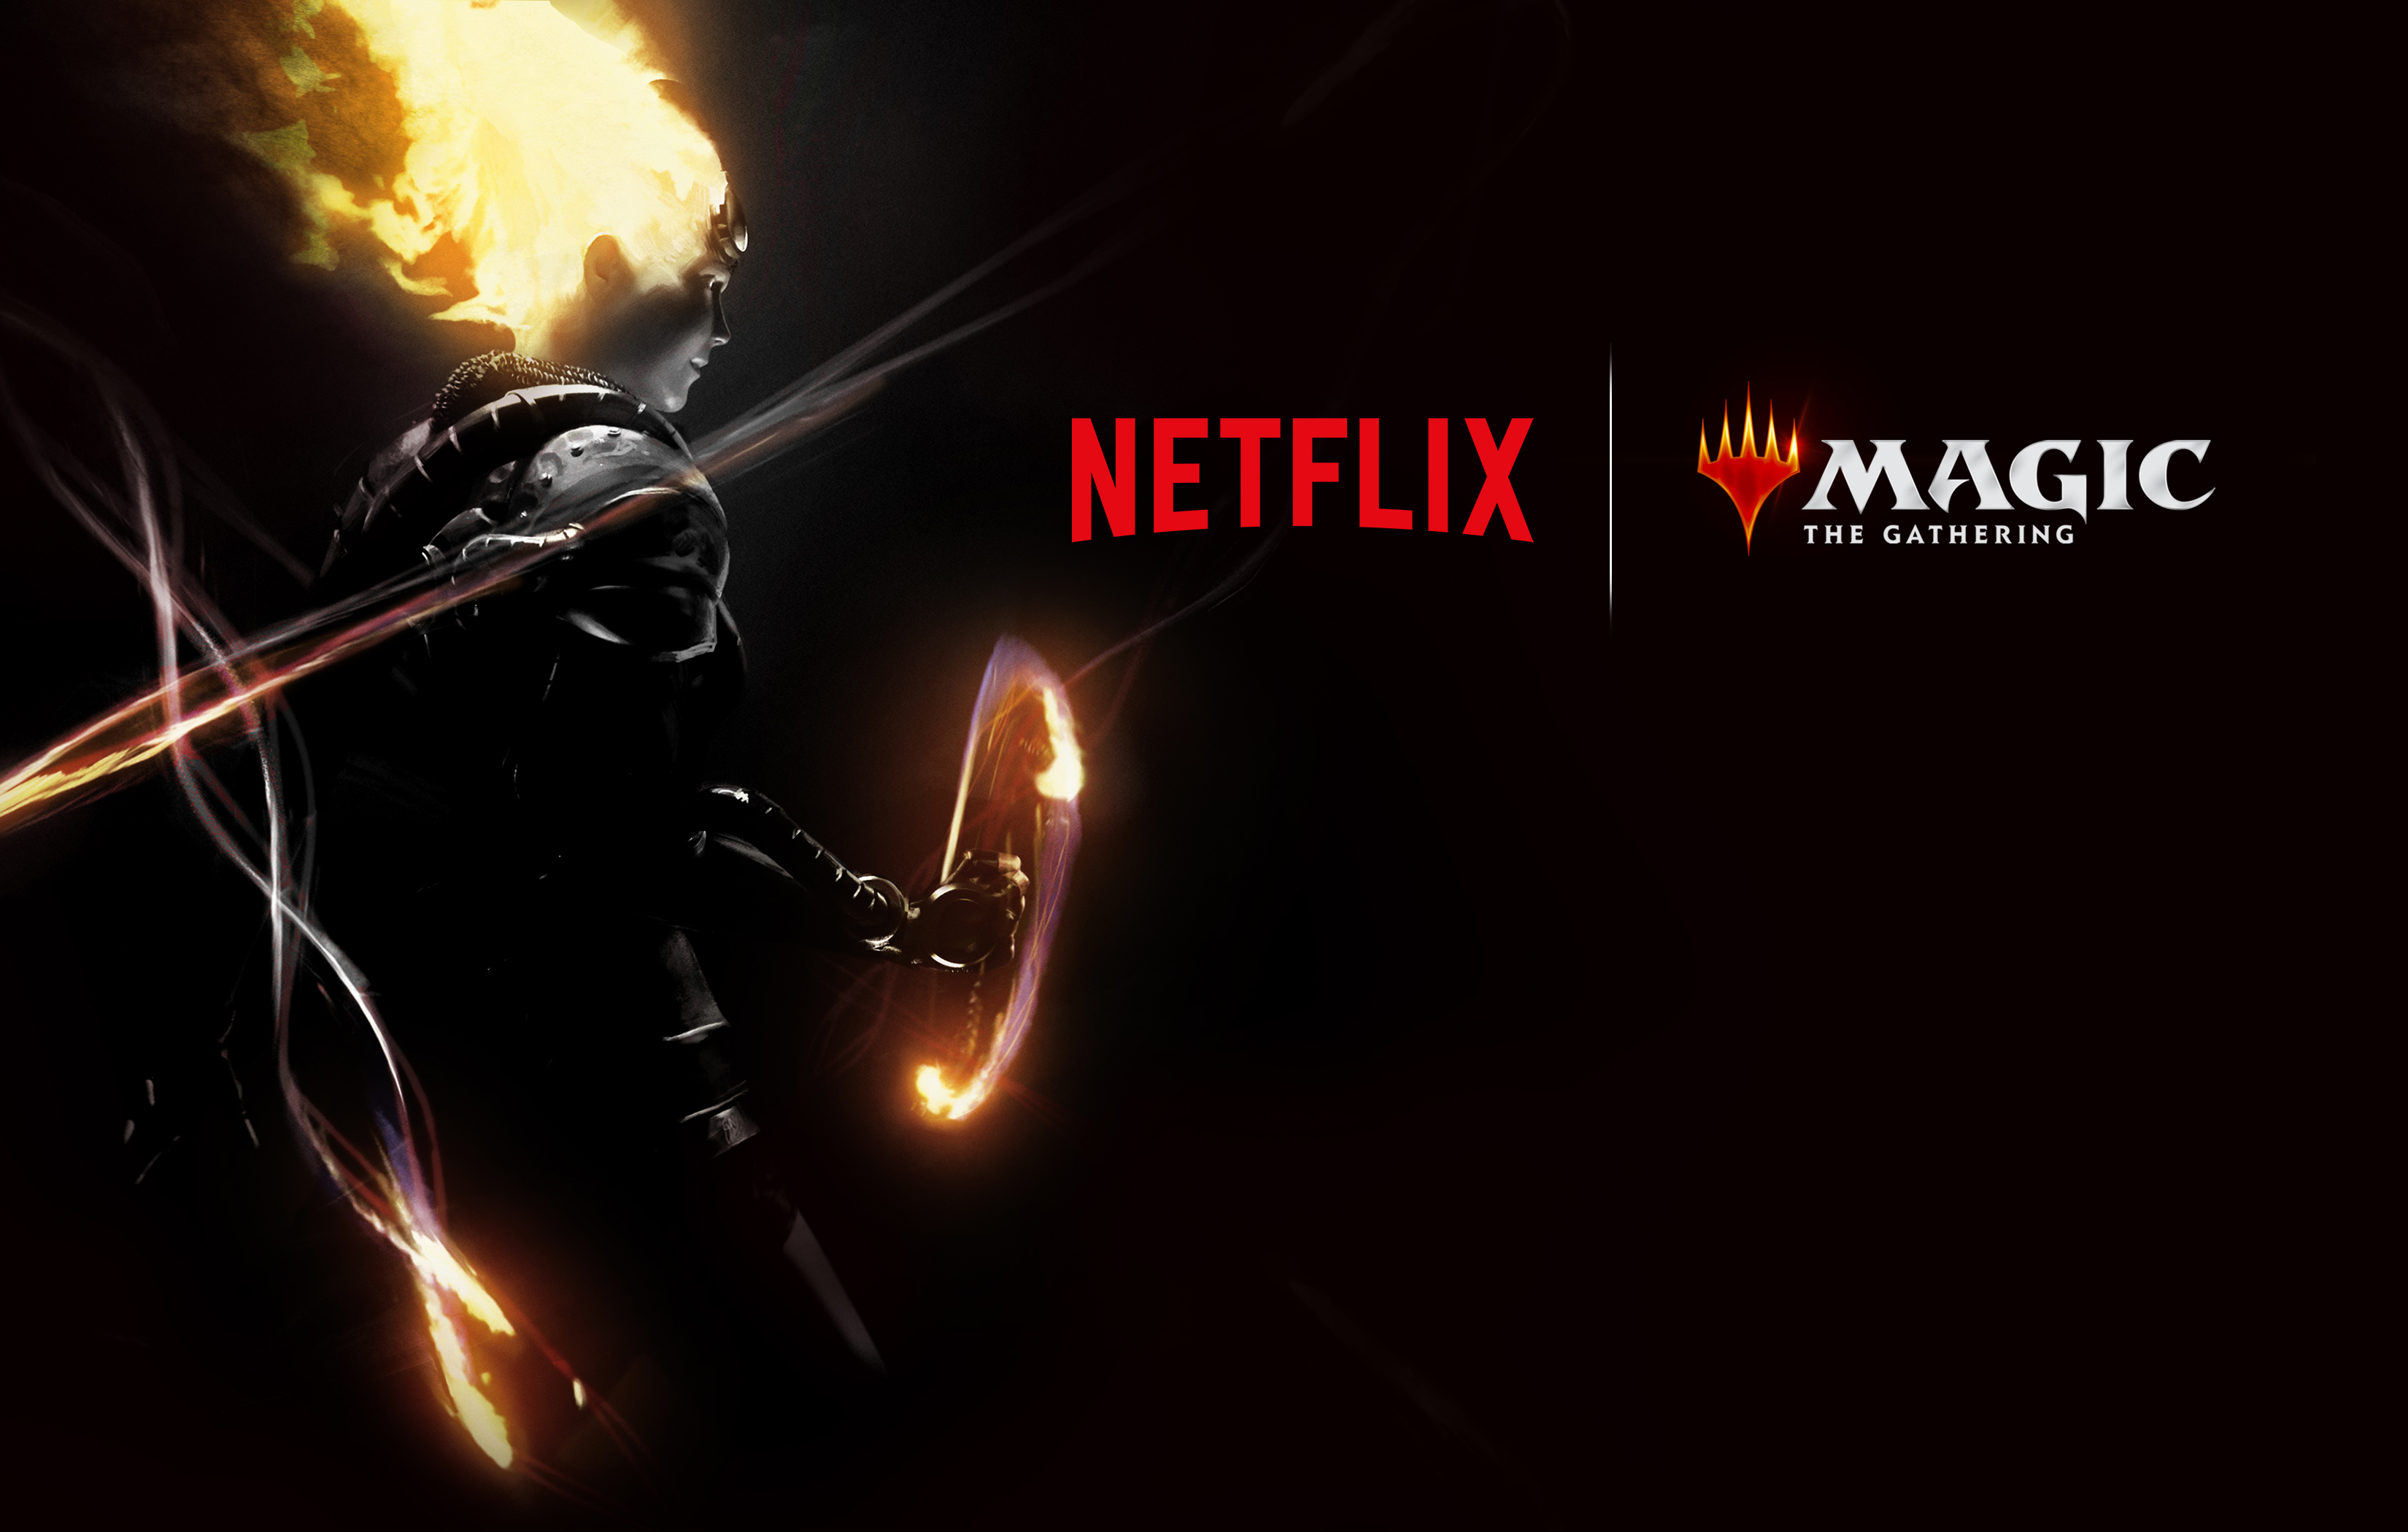 Magic the Gathering - Netflix - Splash Teaser - 01